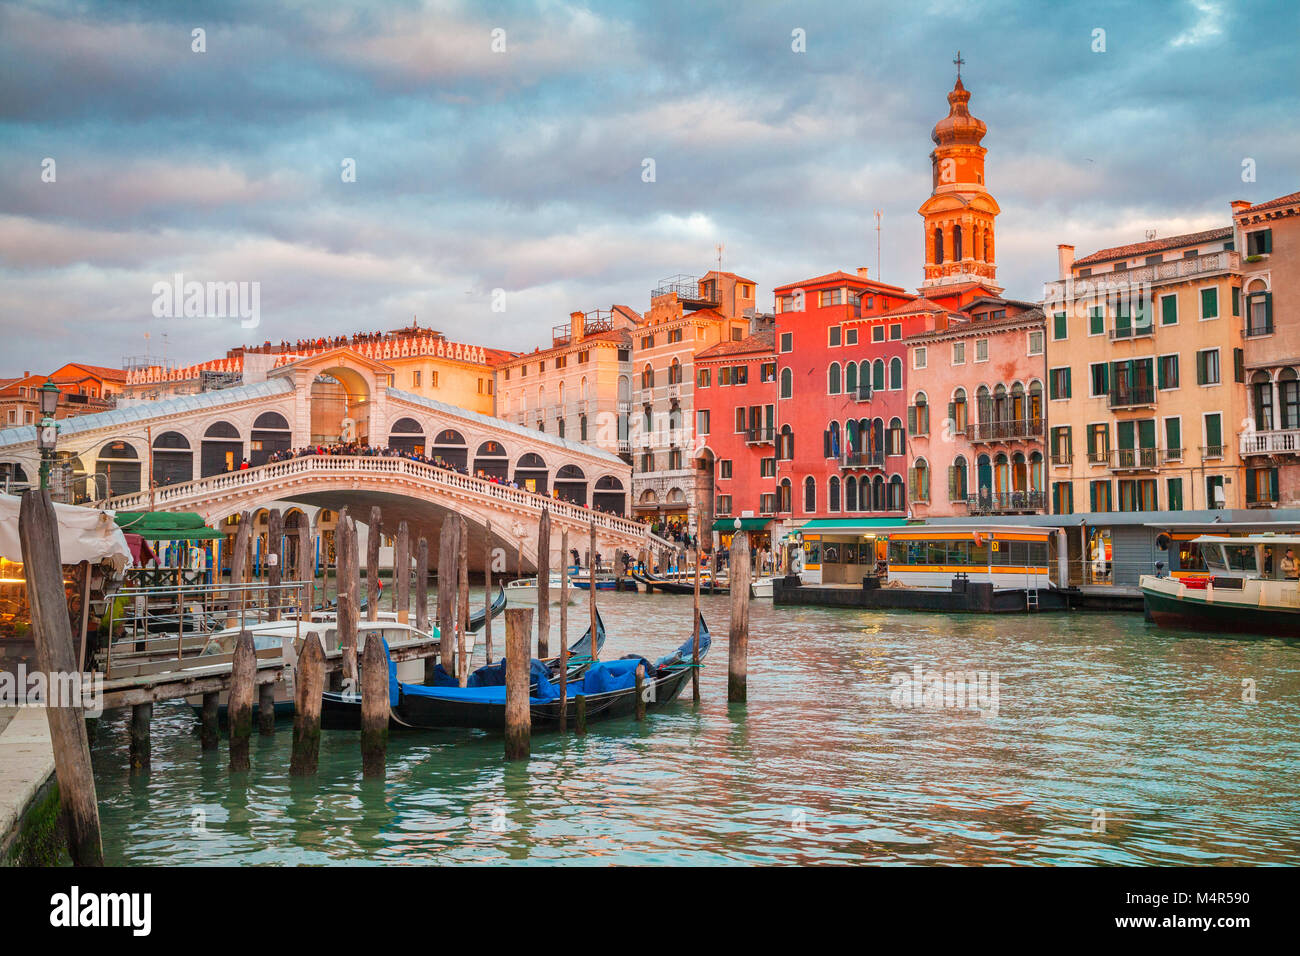 Classic panoramic view with traditional Gondolas on famous Canal Grande with famous Rialto Bridge in the background - Stock Image